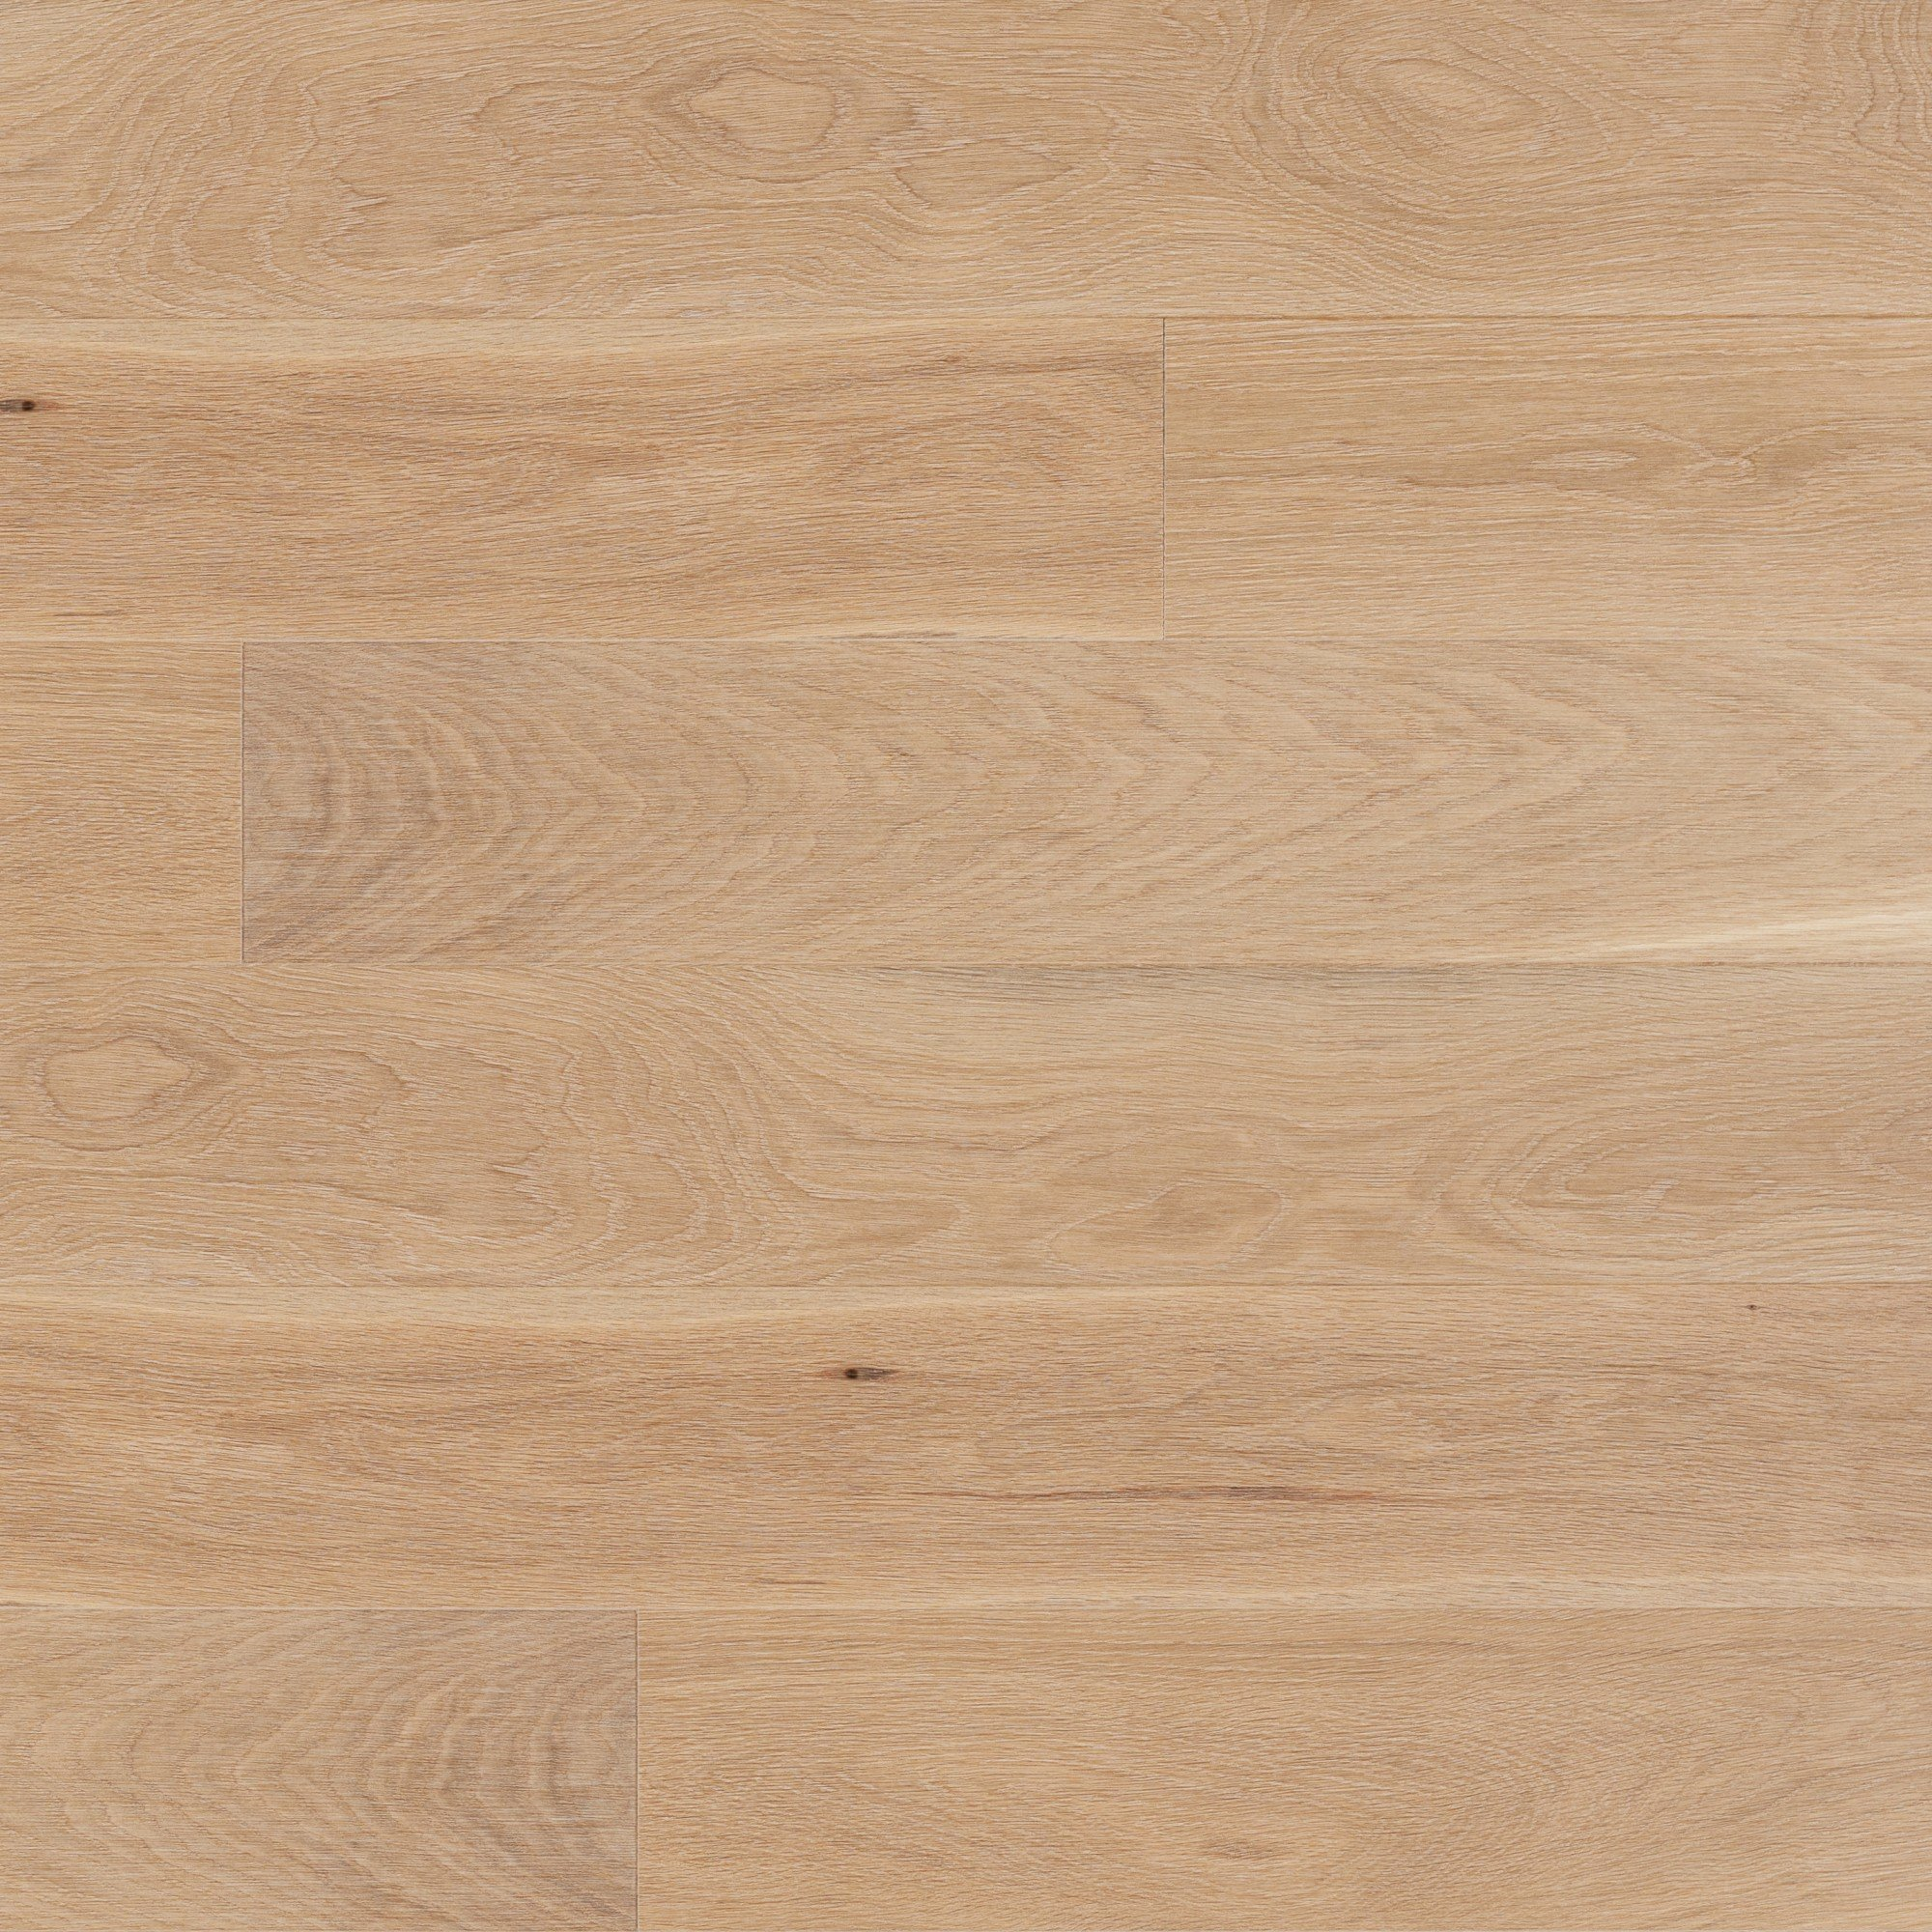 White Oak Isla Exclusive Brushed - Floor image